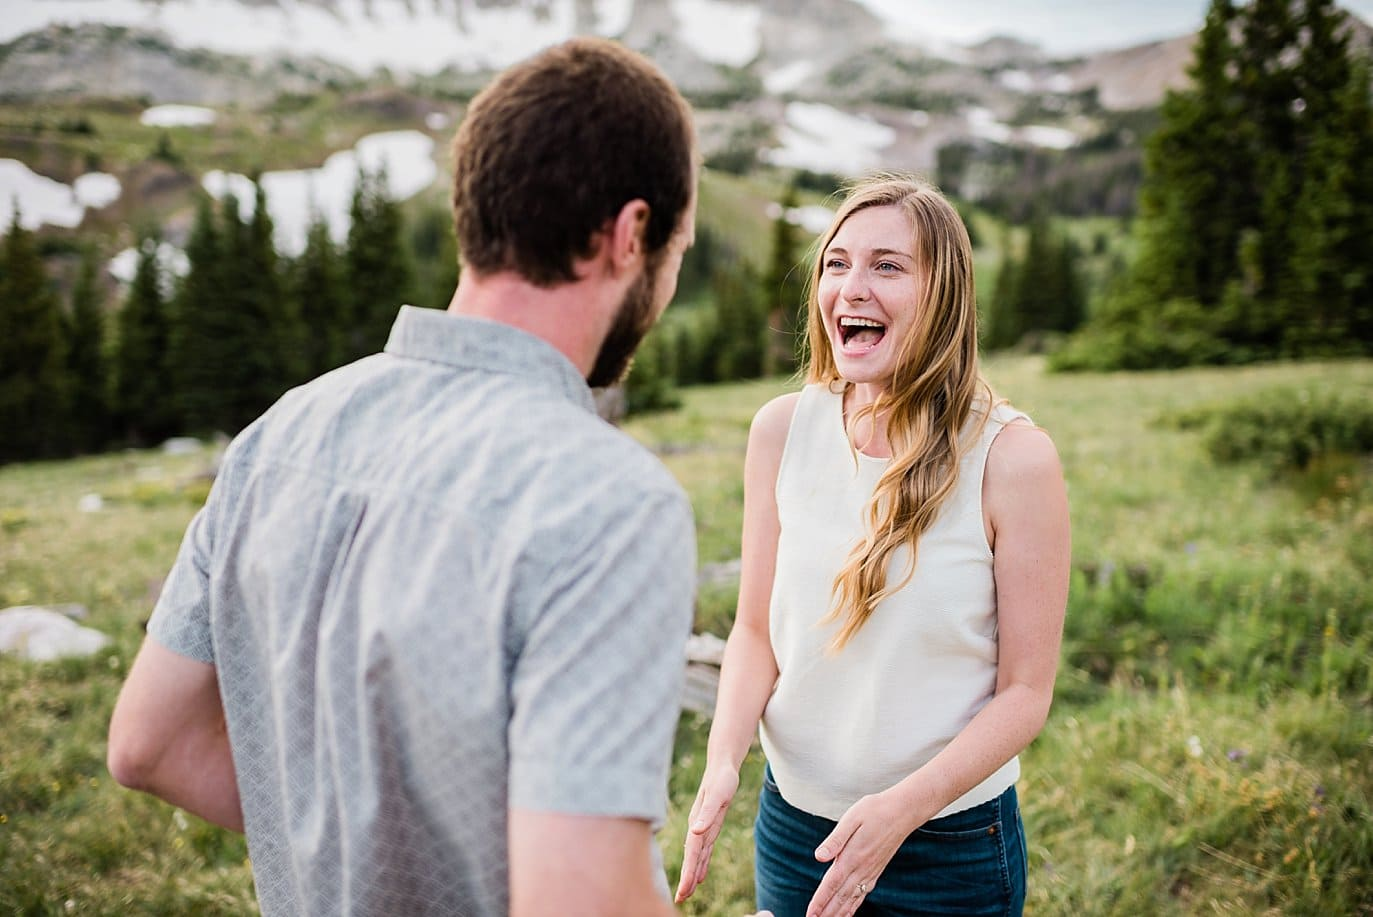 laughing outdoor engagement photo